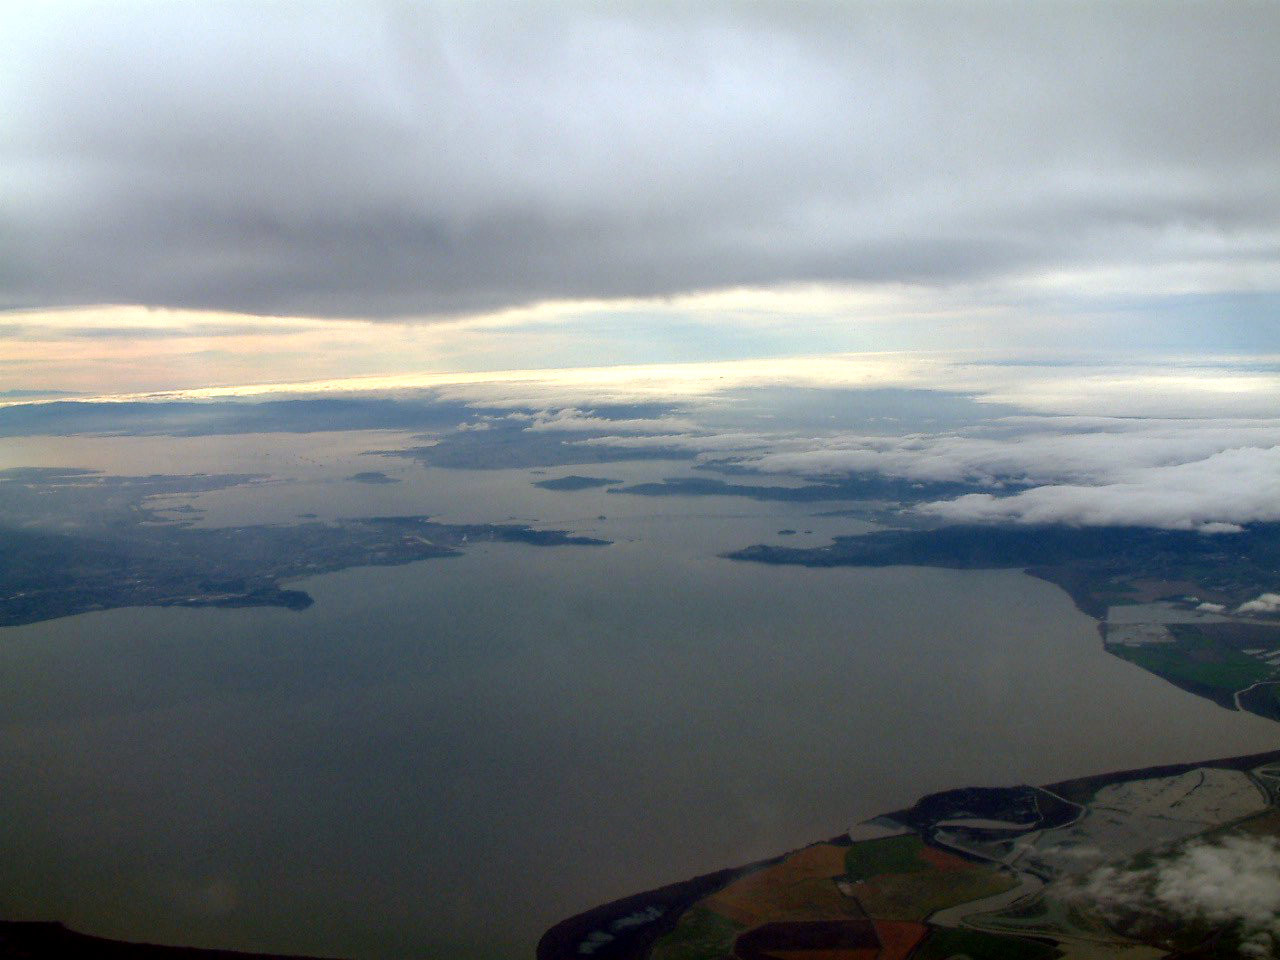 A view out the window of the NOAA research plane, with the Richmond-San Rafael Bridge in the distance. The plane is gaining altitude to fly into the storm cloud.